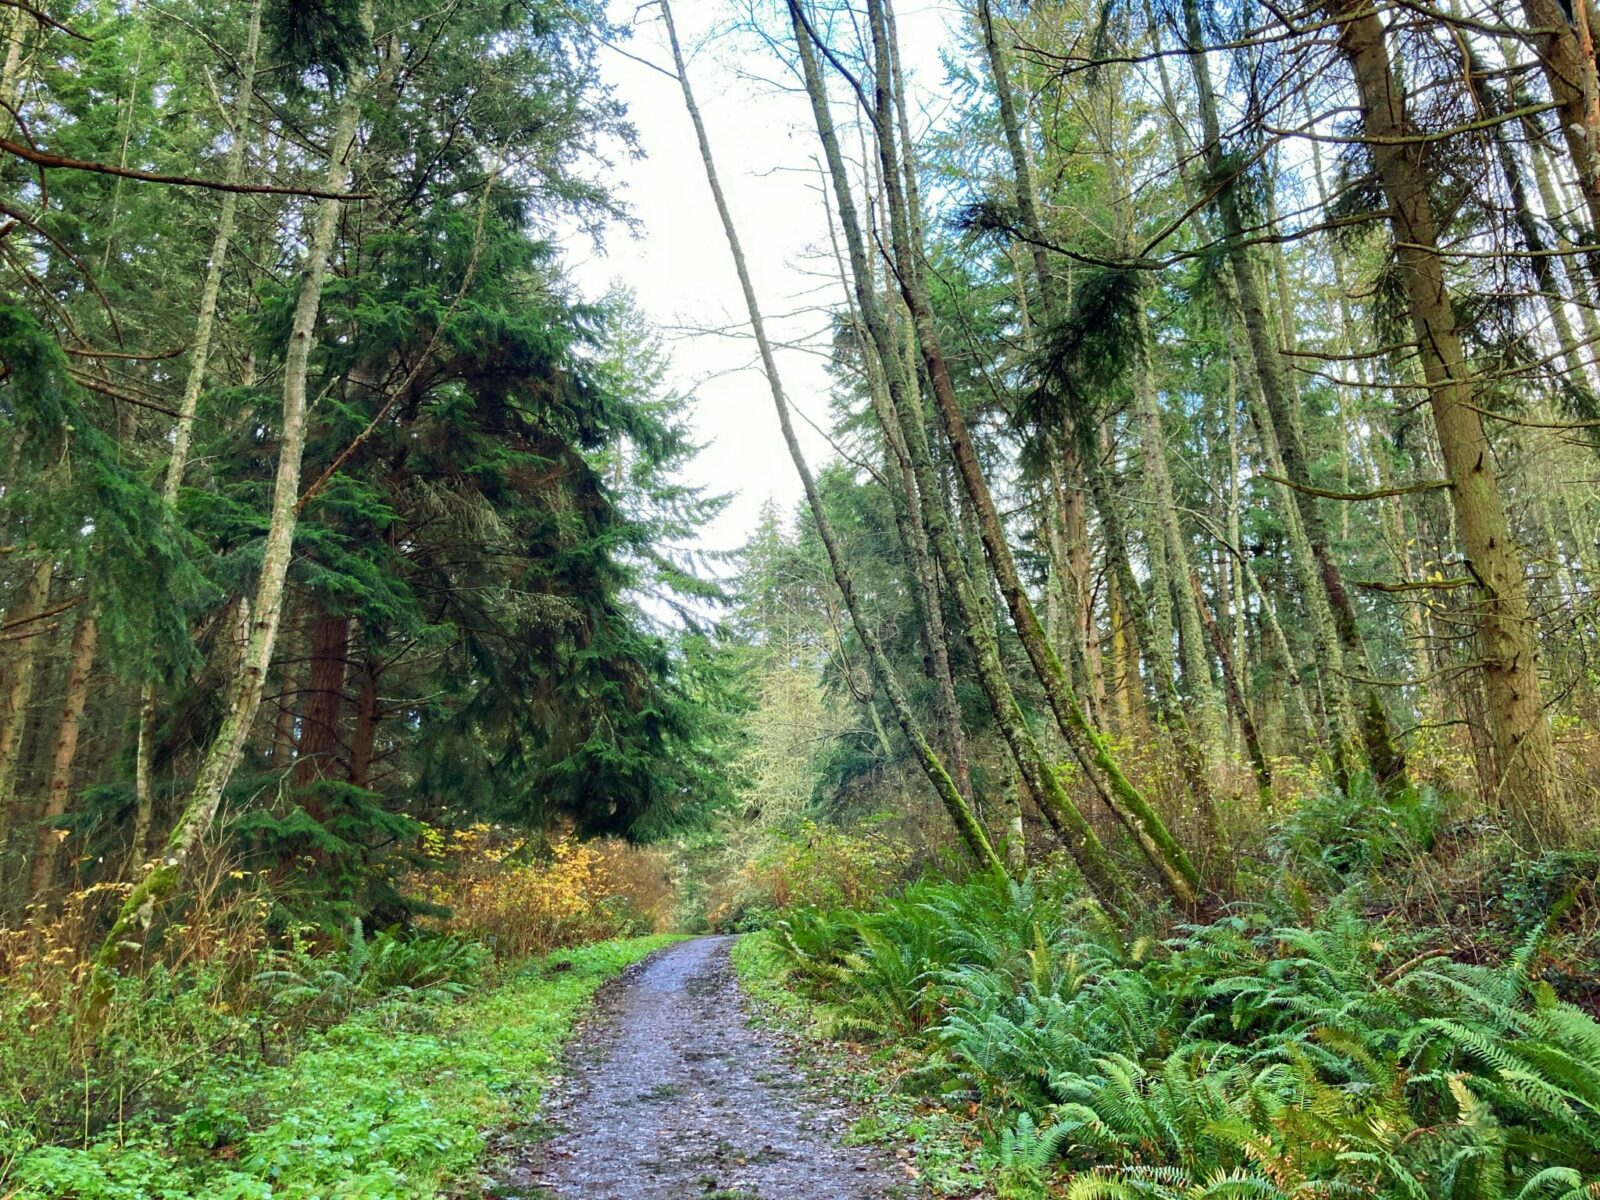 One of the Whidbey Island hikes, Dugualla State park is mostly forested with a beach. In the image, there is a wide muddy trail with leaves on it. The trail is surrounded by evergreen and alder trees as well as ferns and bushes.